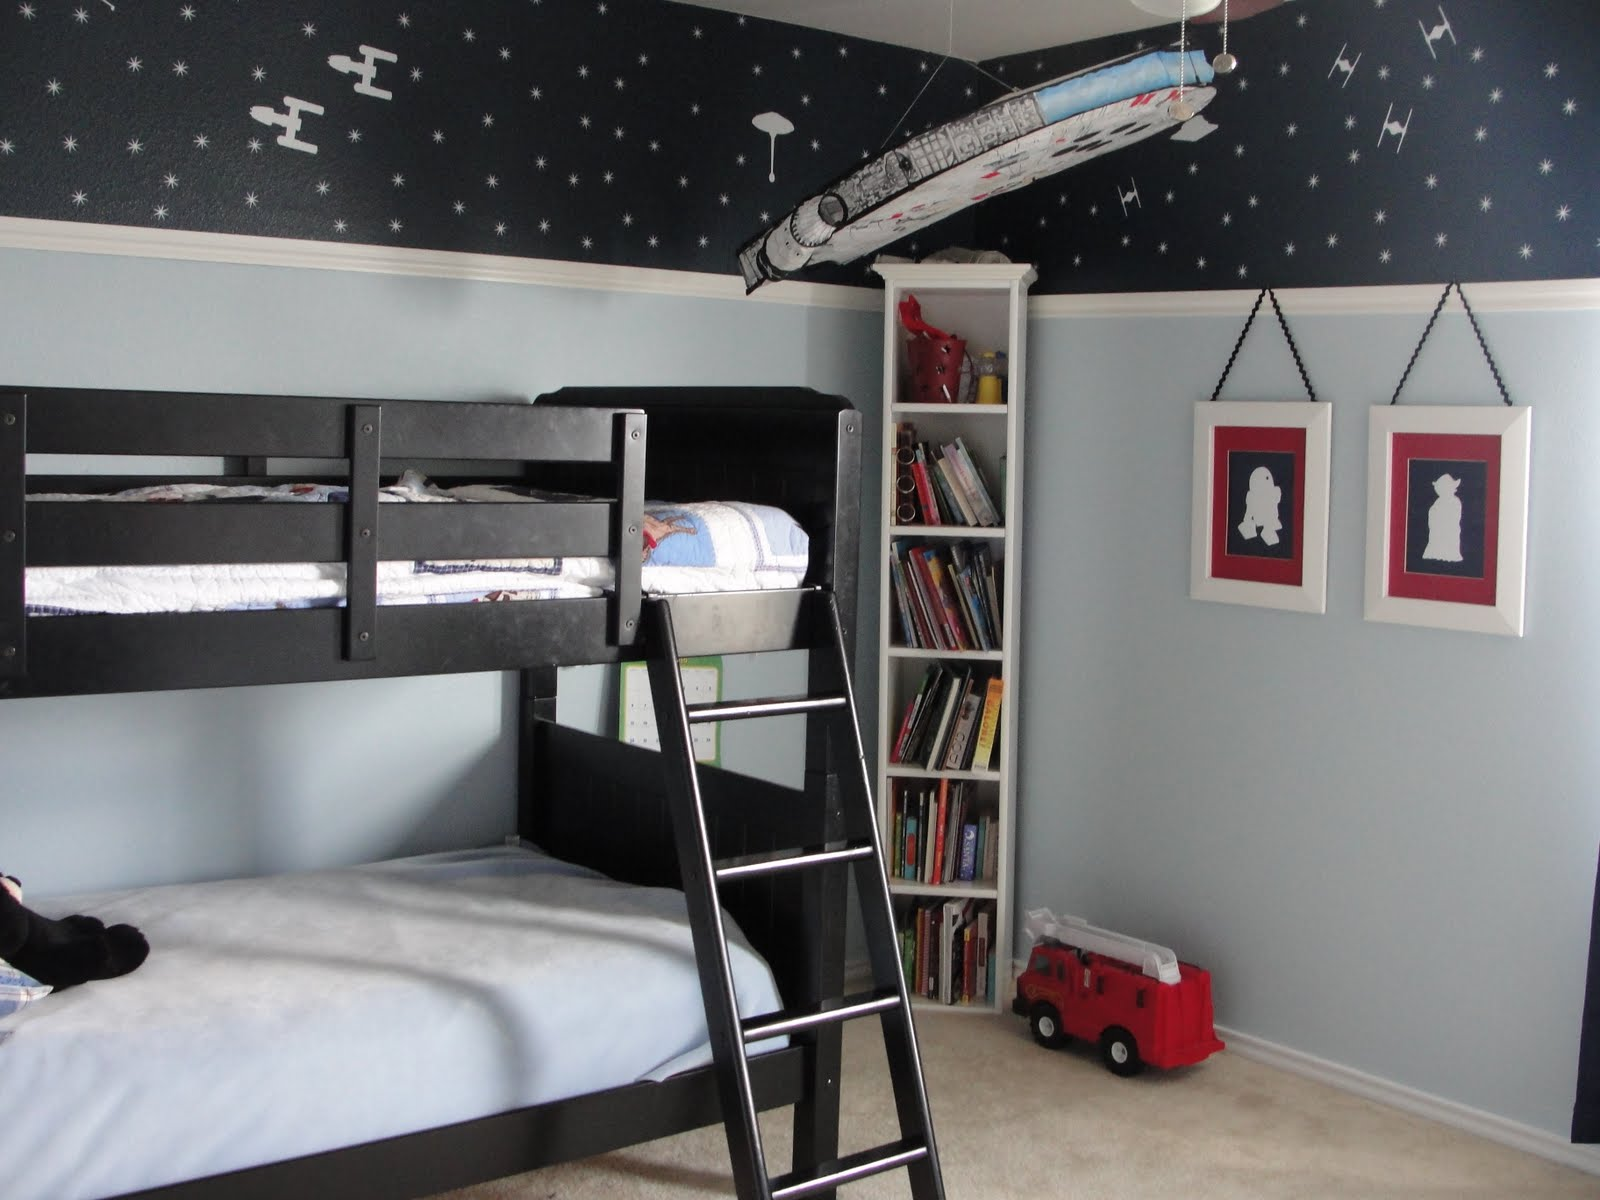 Bedroom designs for boys black - The Boy S Room Star Wars Dream